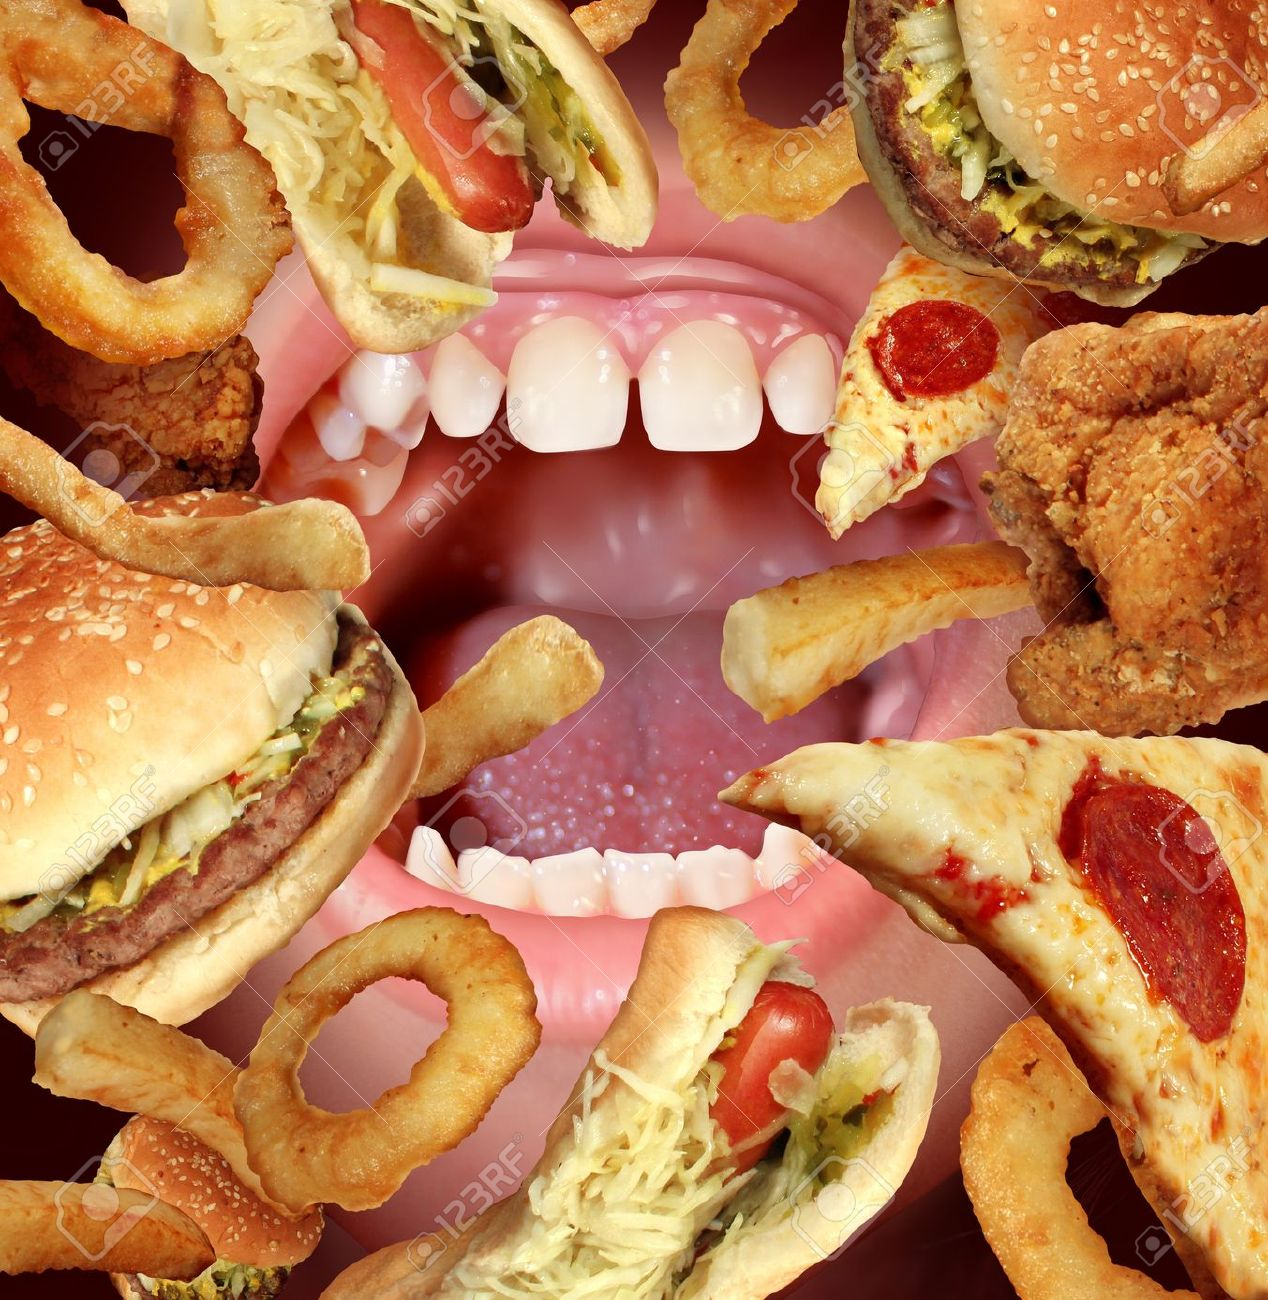 essay about fast food unhealthy